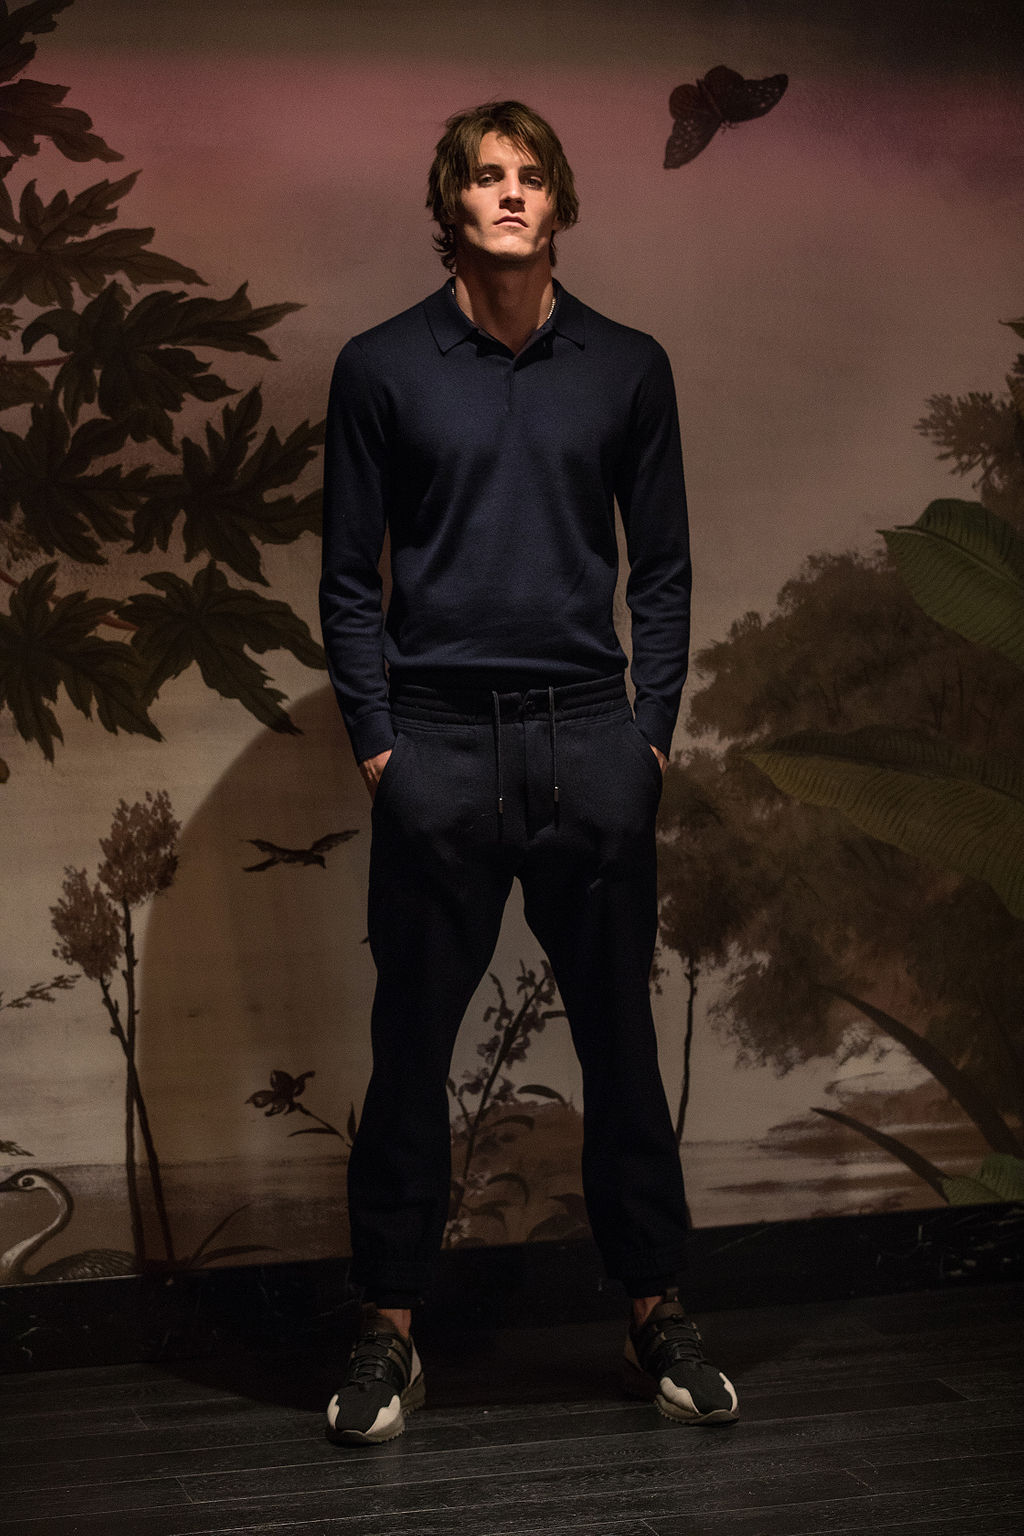 Jack wears polo shirt by  Gieves & Hawkes  with  Cerruti  joggers and sneakers